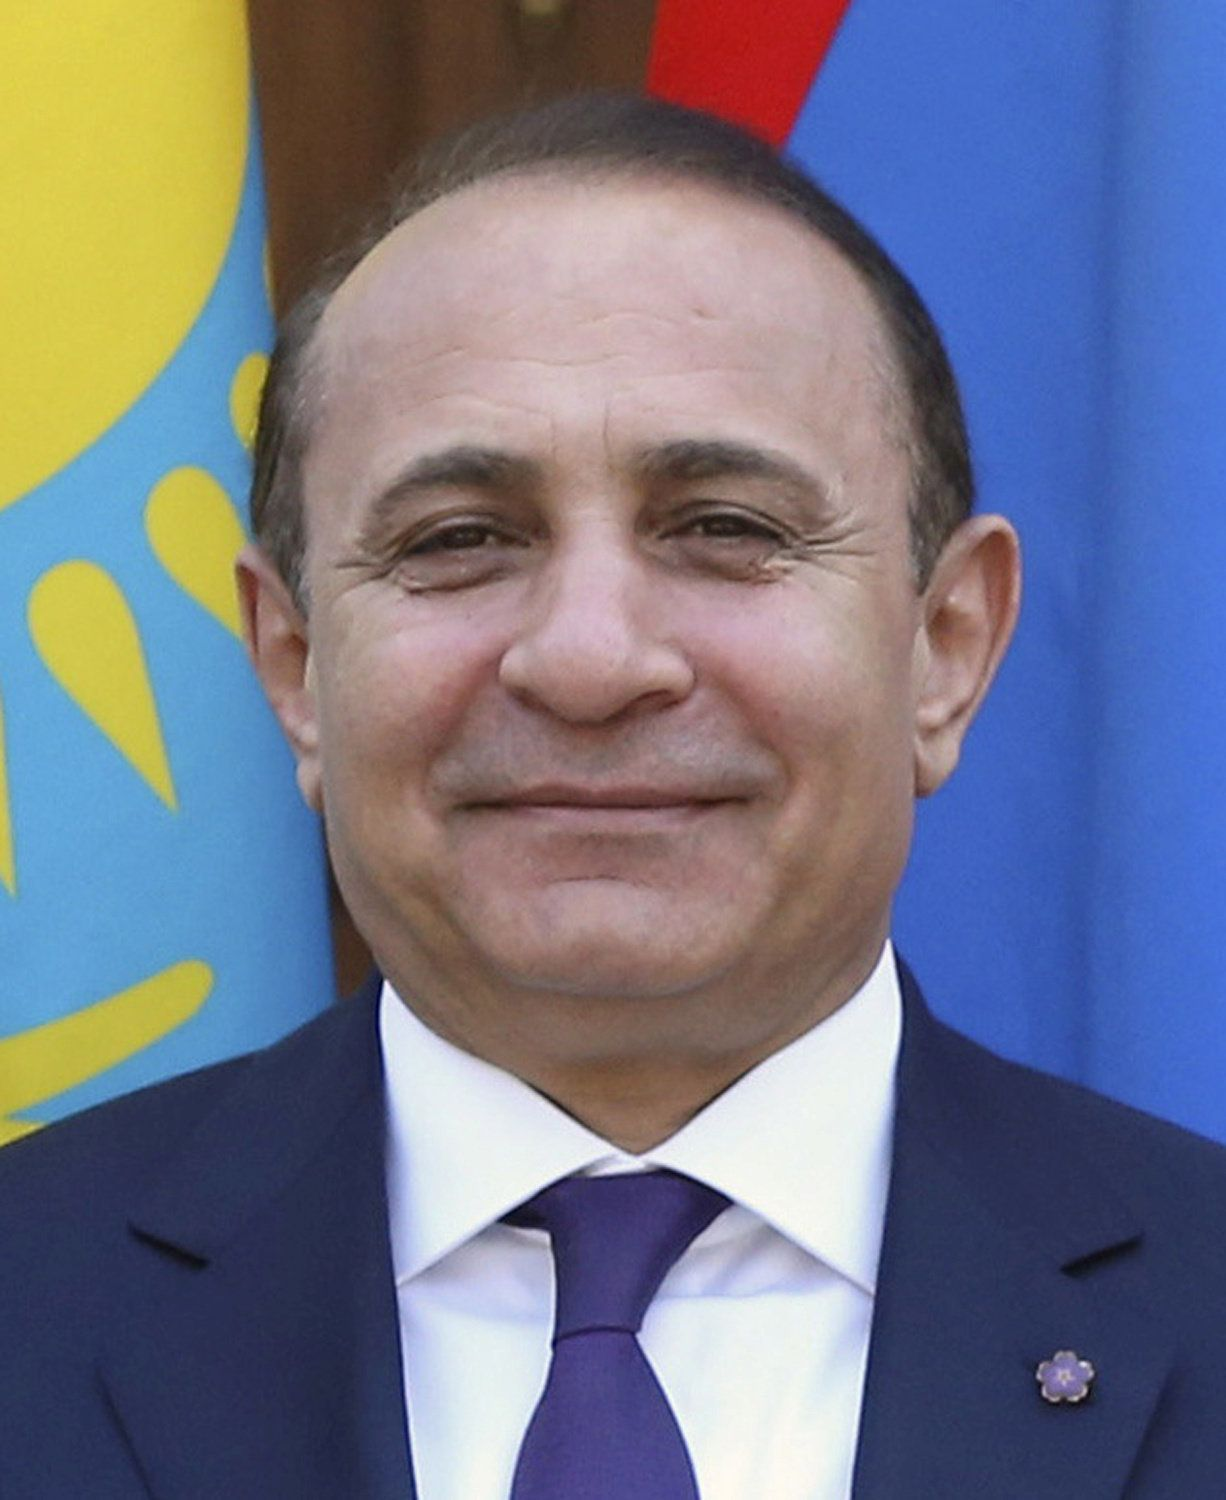 Armenian Prime Minister Hovik Abrahamyan poses for a picture as he attends a meeting of the Eurasian Intergovernmental Council at the Gorki state residence outside Moscow, Russia, April 13, 2016.  REUTERS/Ekaterina Shtukina/Sputnik/Pool/File photoATTENTION EDITORS - THIS IMAGE HAS BEEN SUPPLIED BY A THIRD PARTY. IT IS DISTRIBUTED, EXACTLY AS RECEIVED BY REUTERS, AS A SERVICE TO CLIENTS